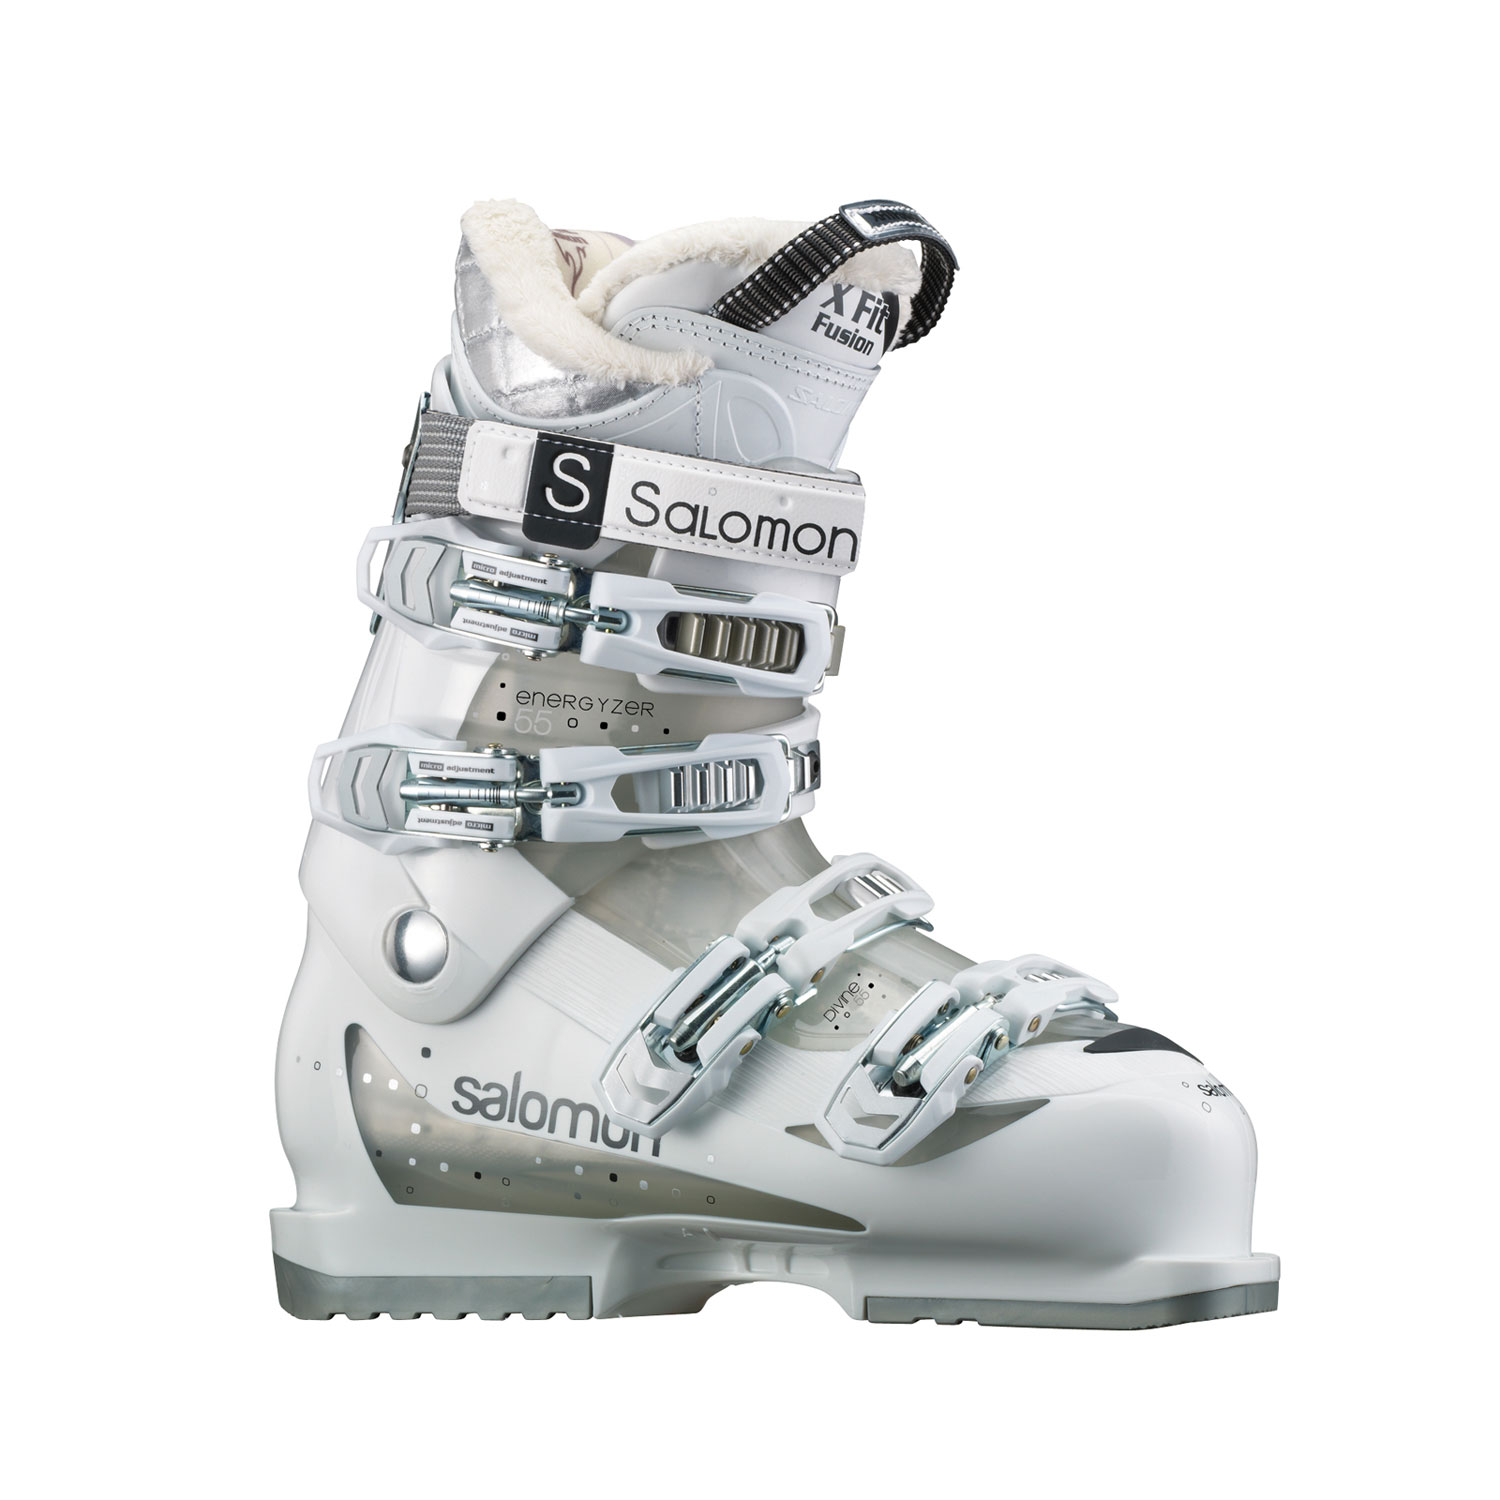 Ski Key Features of the Salomon Divine 55 Ski Boots: Xfit Fusion Comfort 4 Micro Plastic Buckles Tool Free Catch Adjustment Heel And Toe Removable Din Pads Women Specific Liner Polar Fleece Women Heel Wedge - $139.95